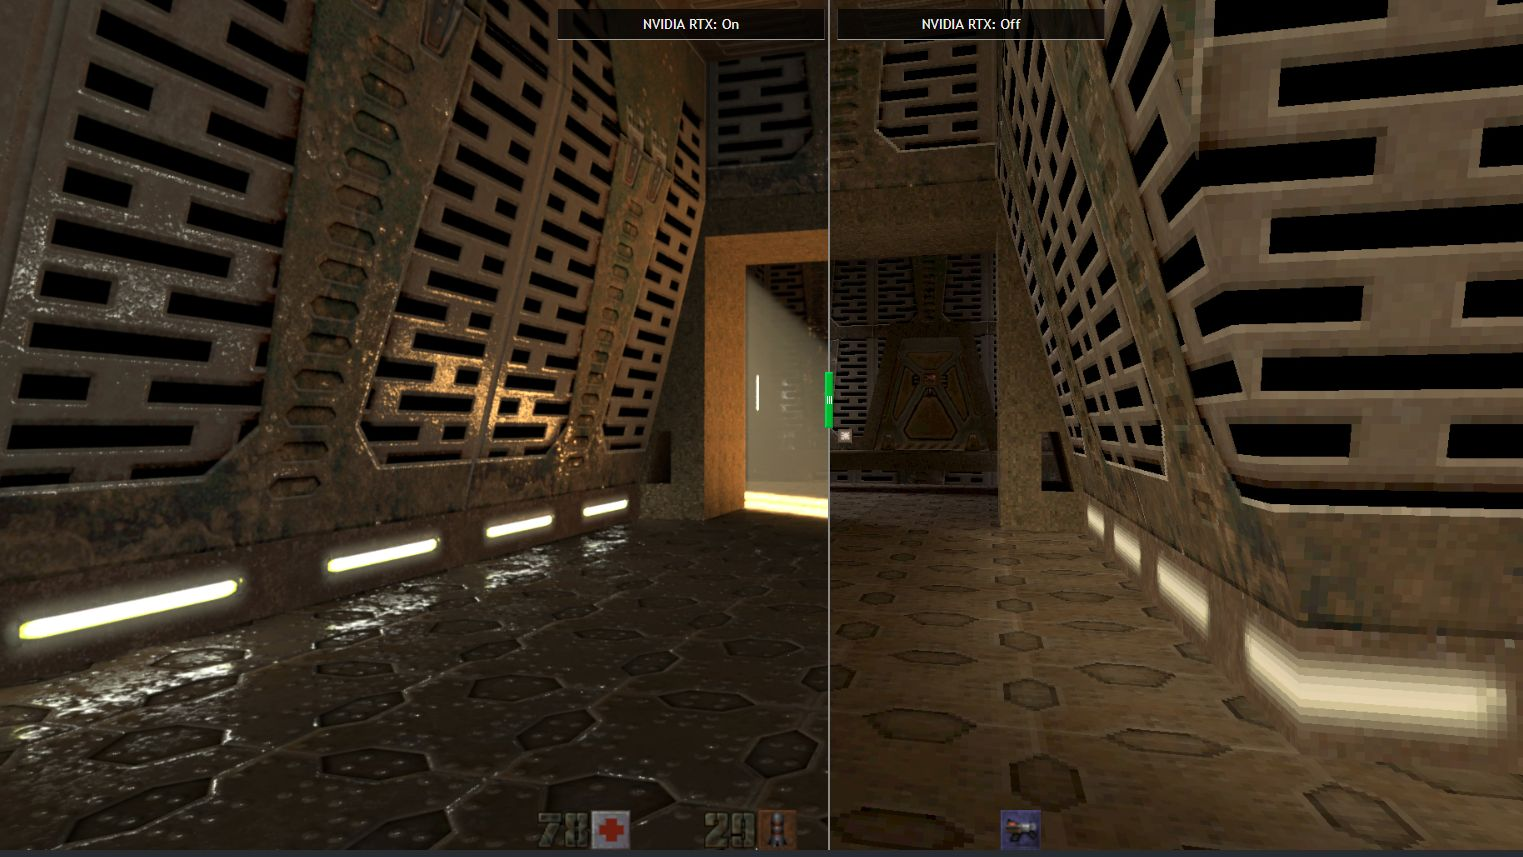 quake 2 rtx on off